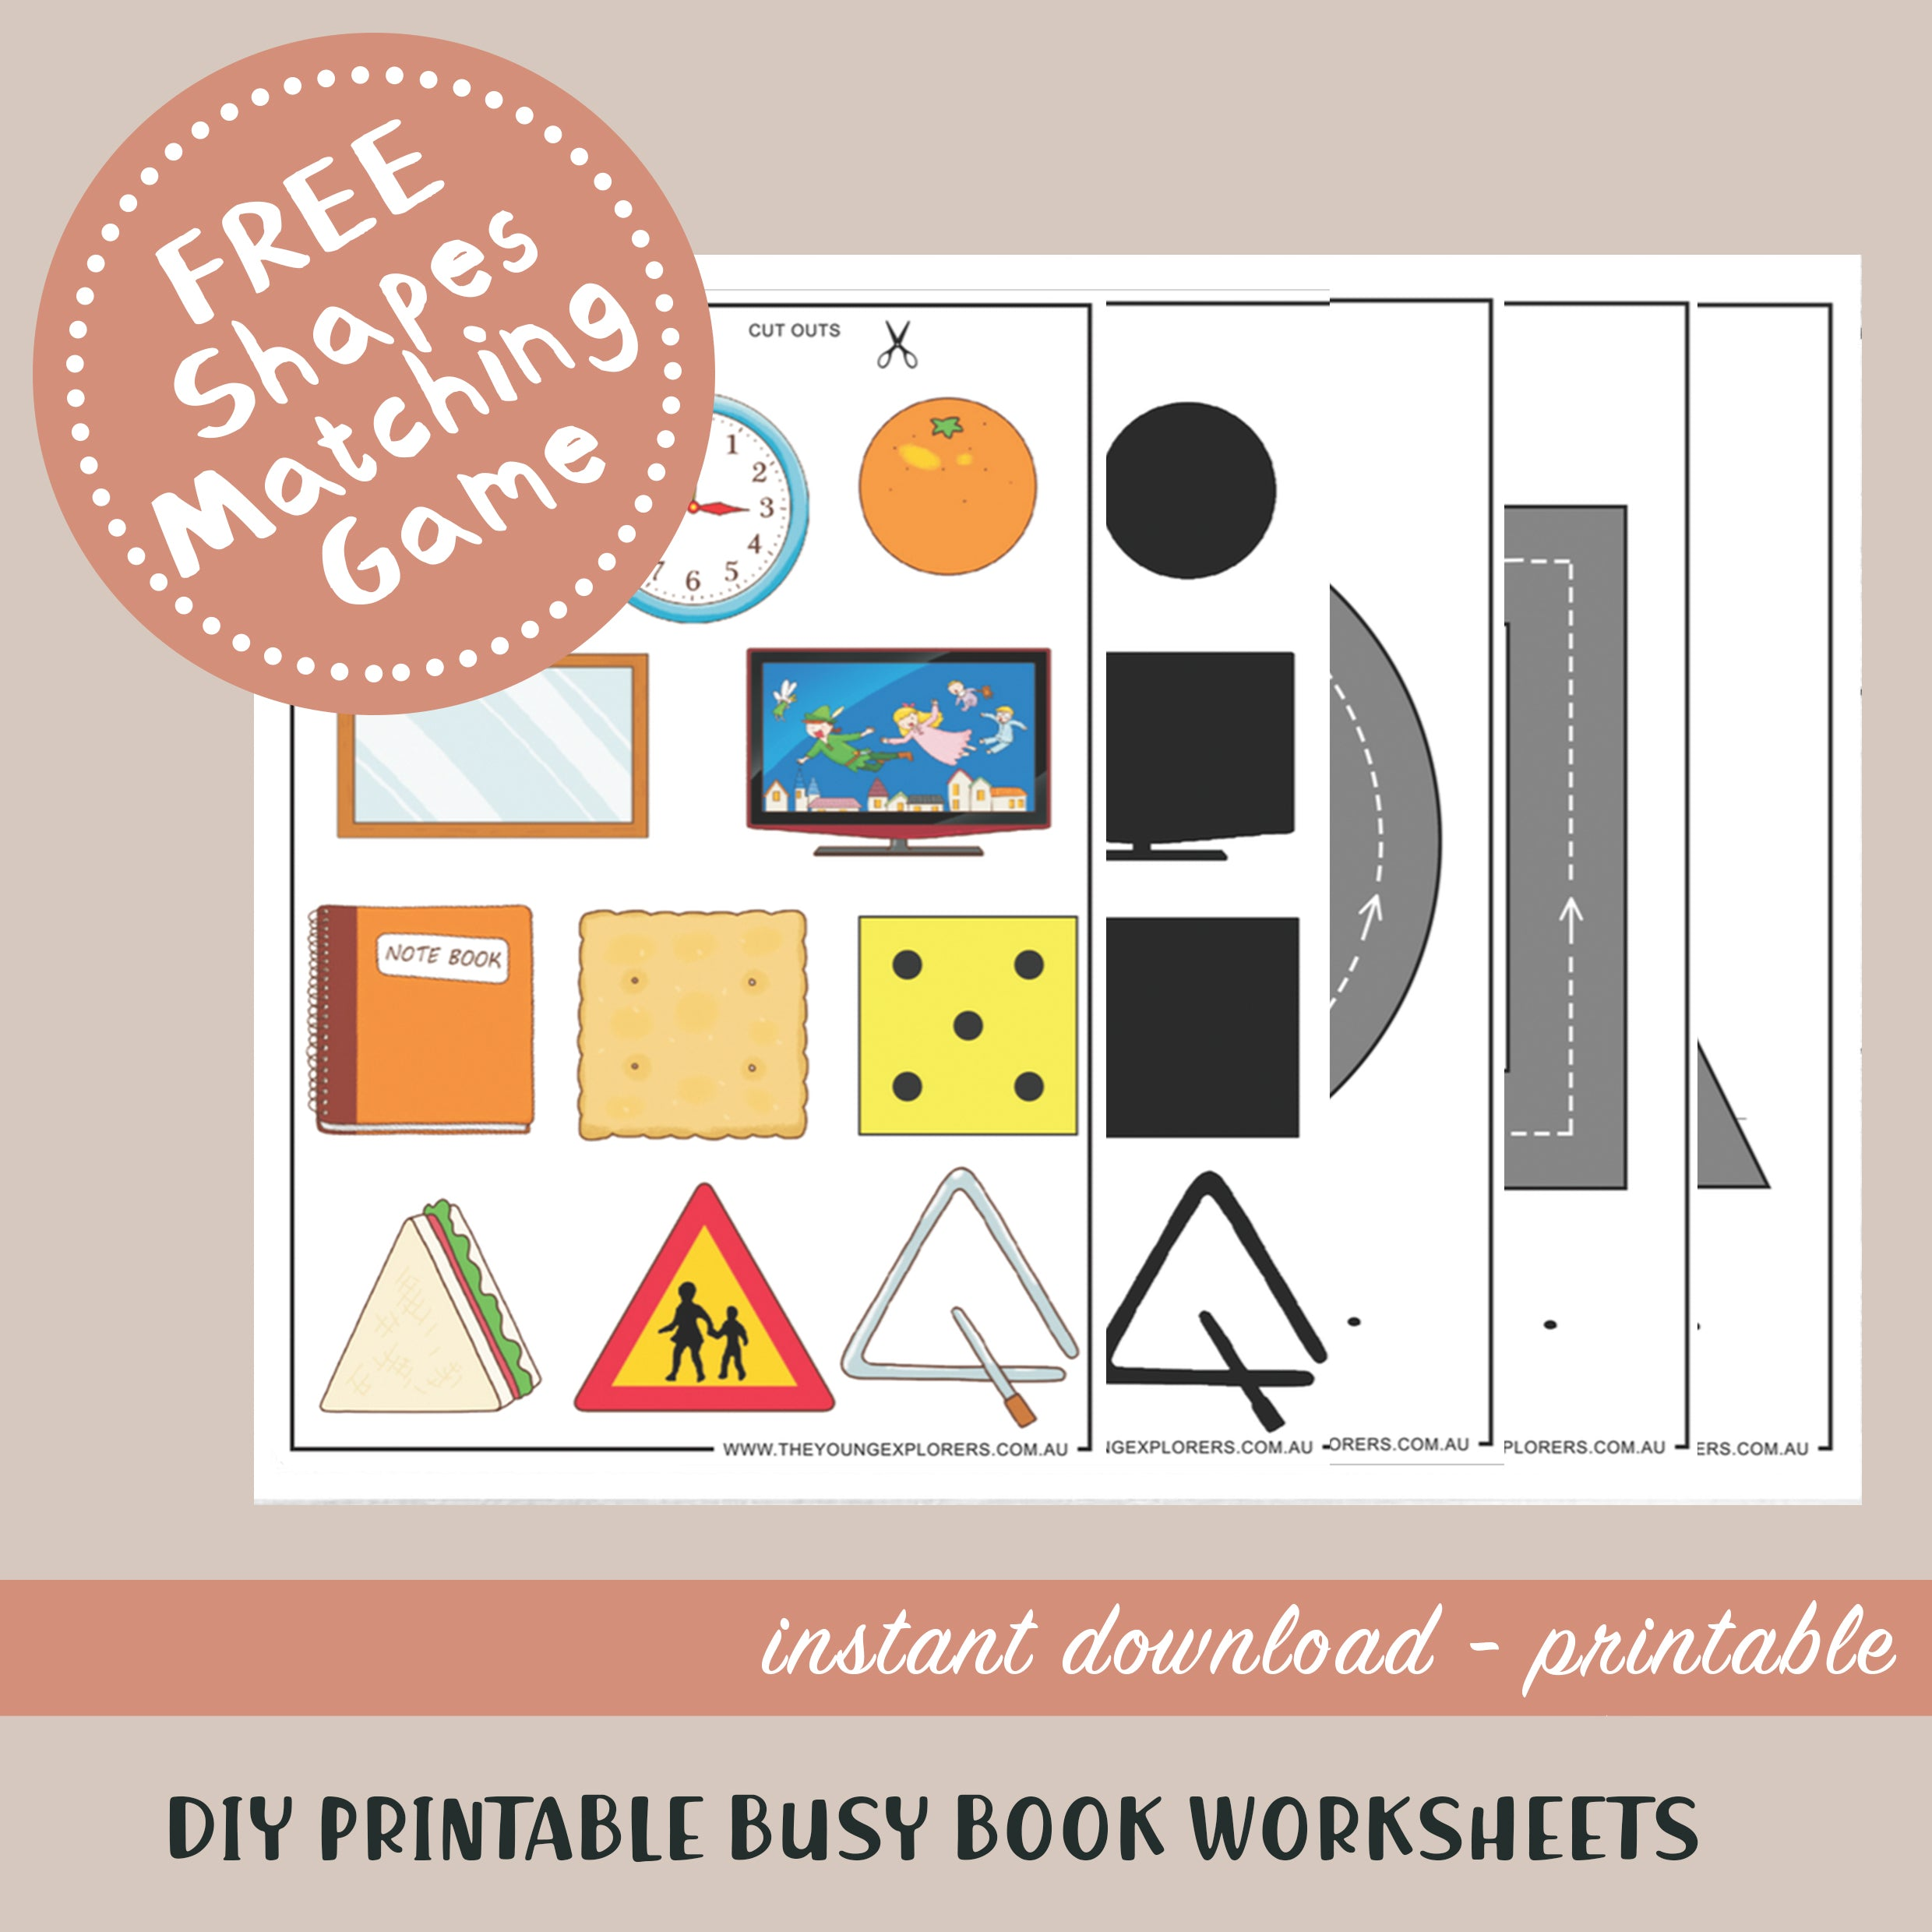 Shapes Matching Printable Busy Book Worksheets FREE